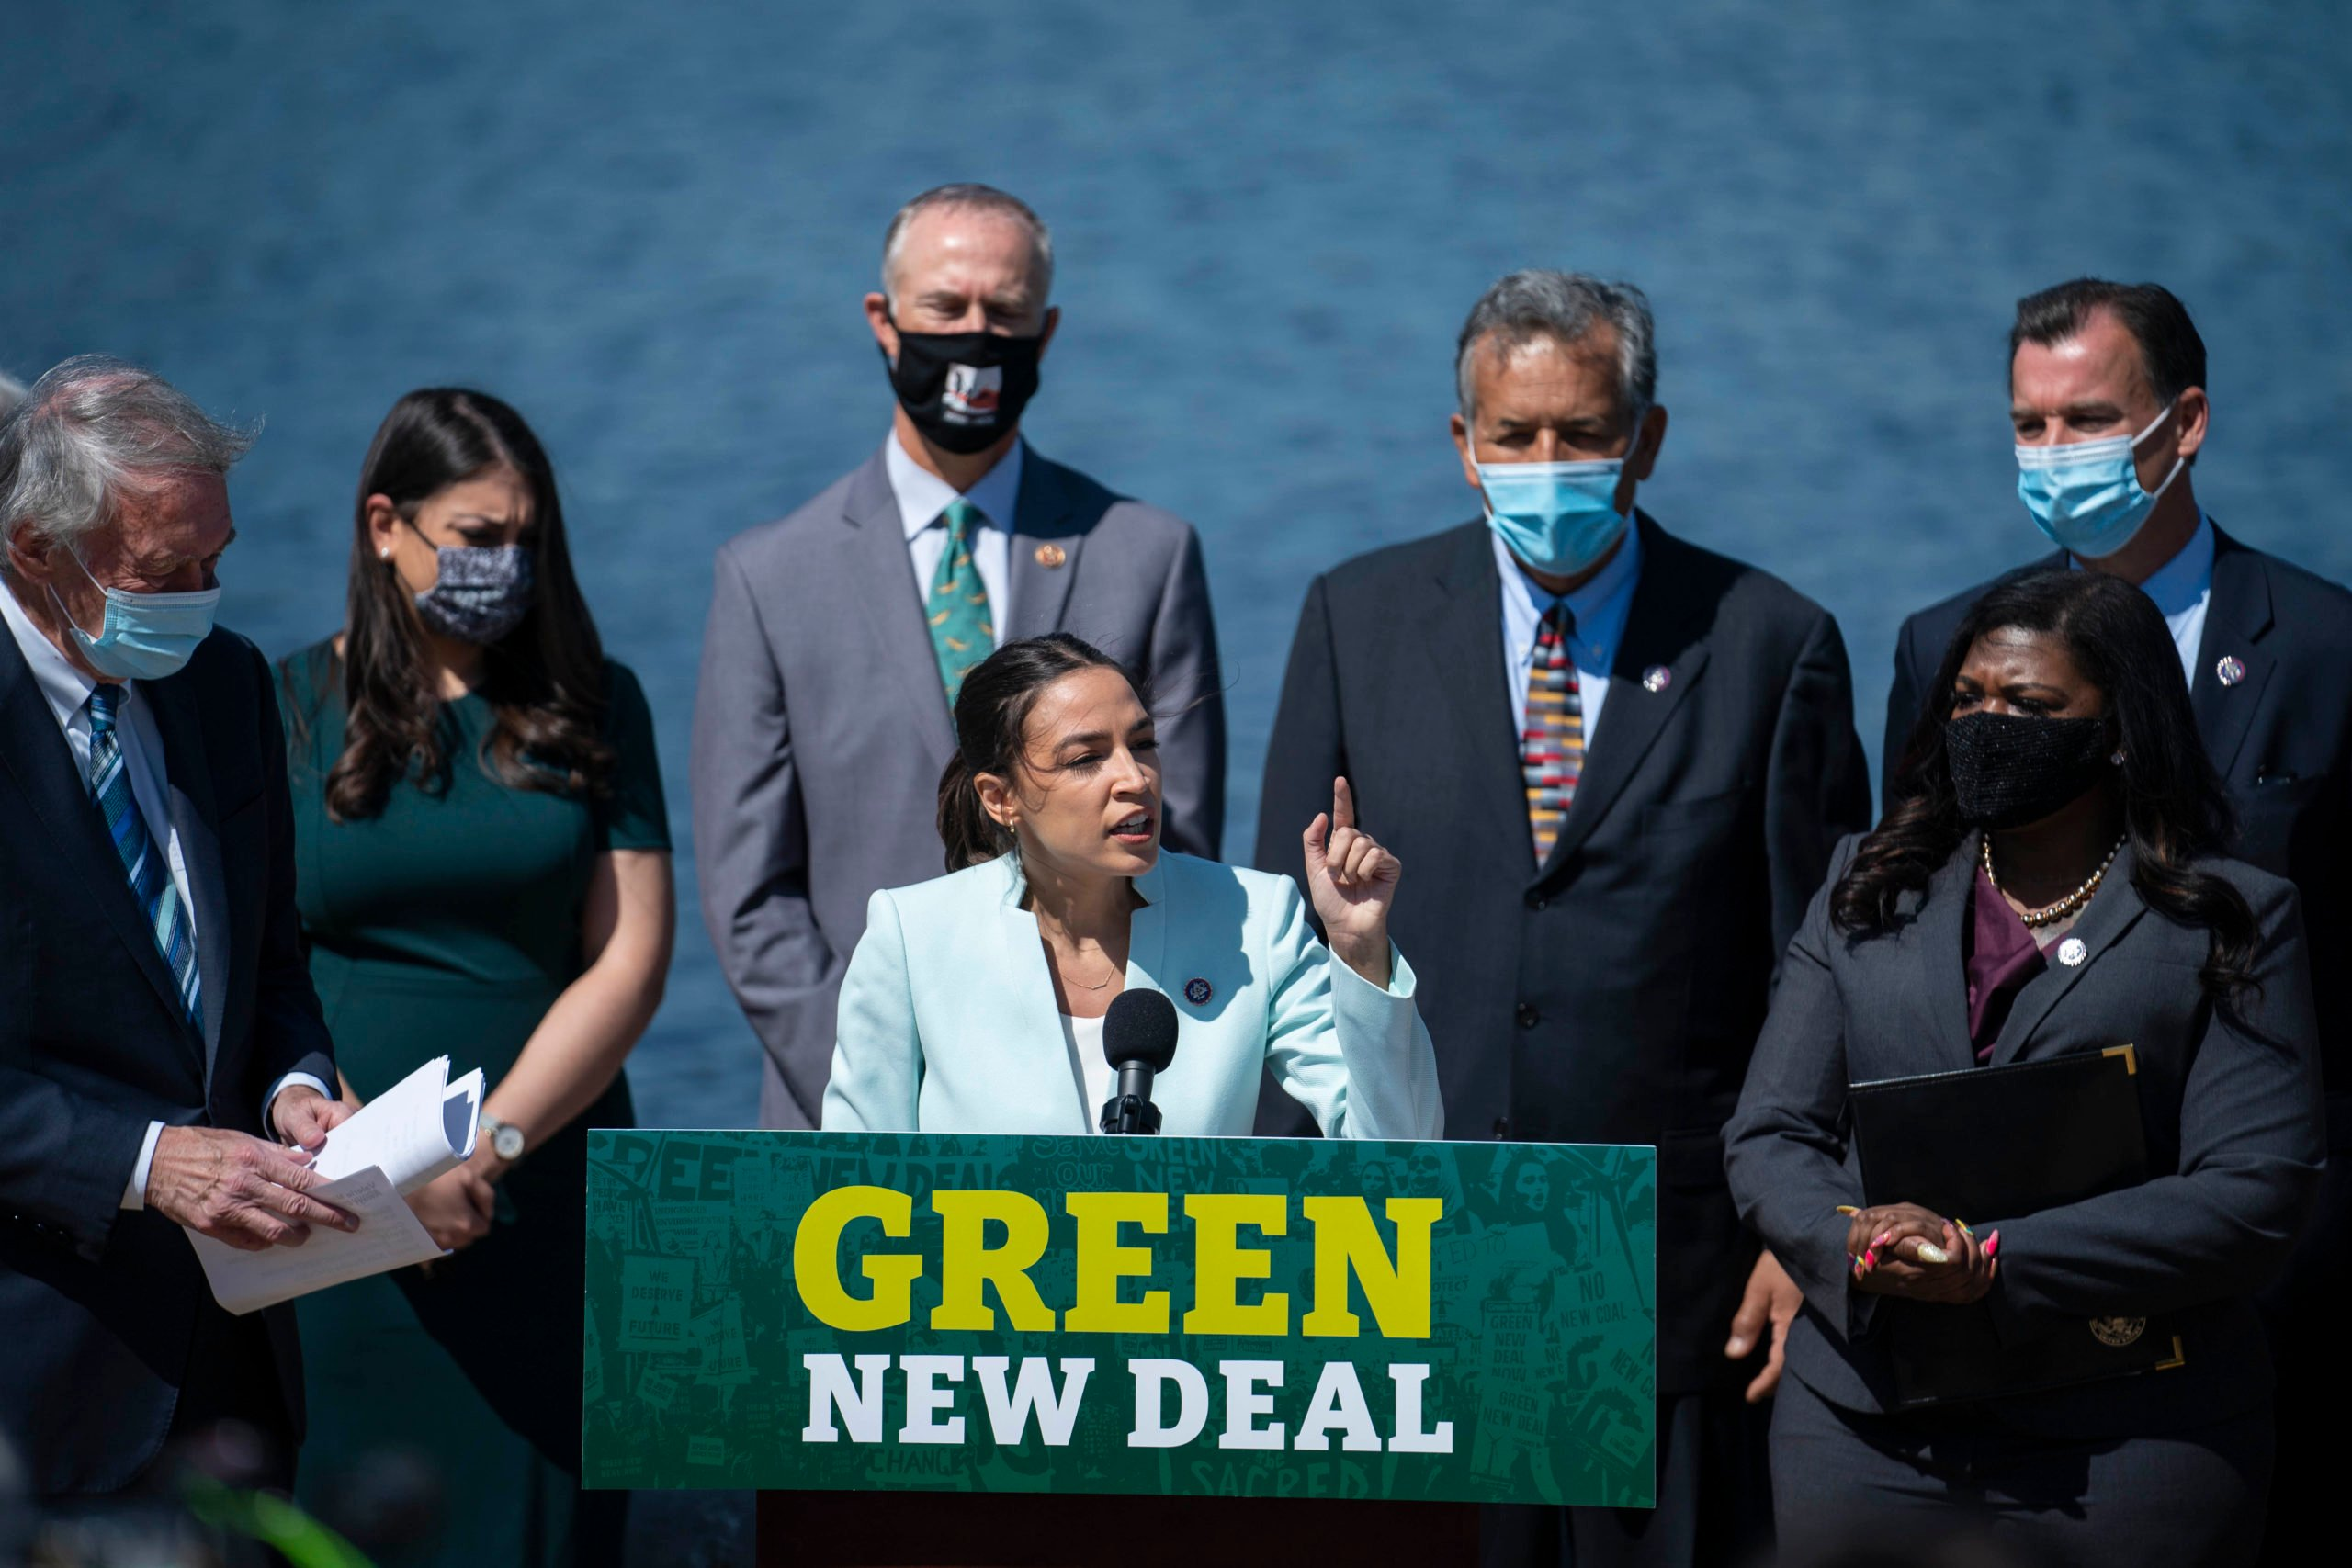 WASHINGTON, DC - APRIL 20: Rep. Alexandria Ocasio-Cortez (D-NY) speaks during a news conference held to re-introduce the Green New Deal at the West Front of the U.S. Capitol on April 20, 2021 in Washington, DC. The news conference was held ahead of Earth Day later this week. (Photo by Sarah Silbiger/Getty Images)